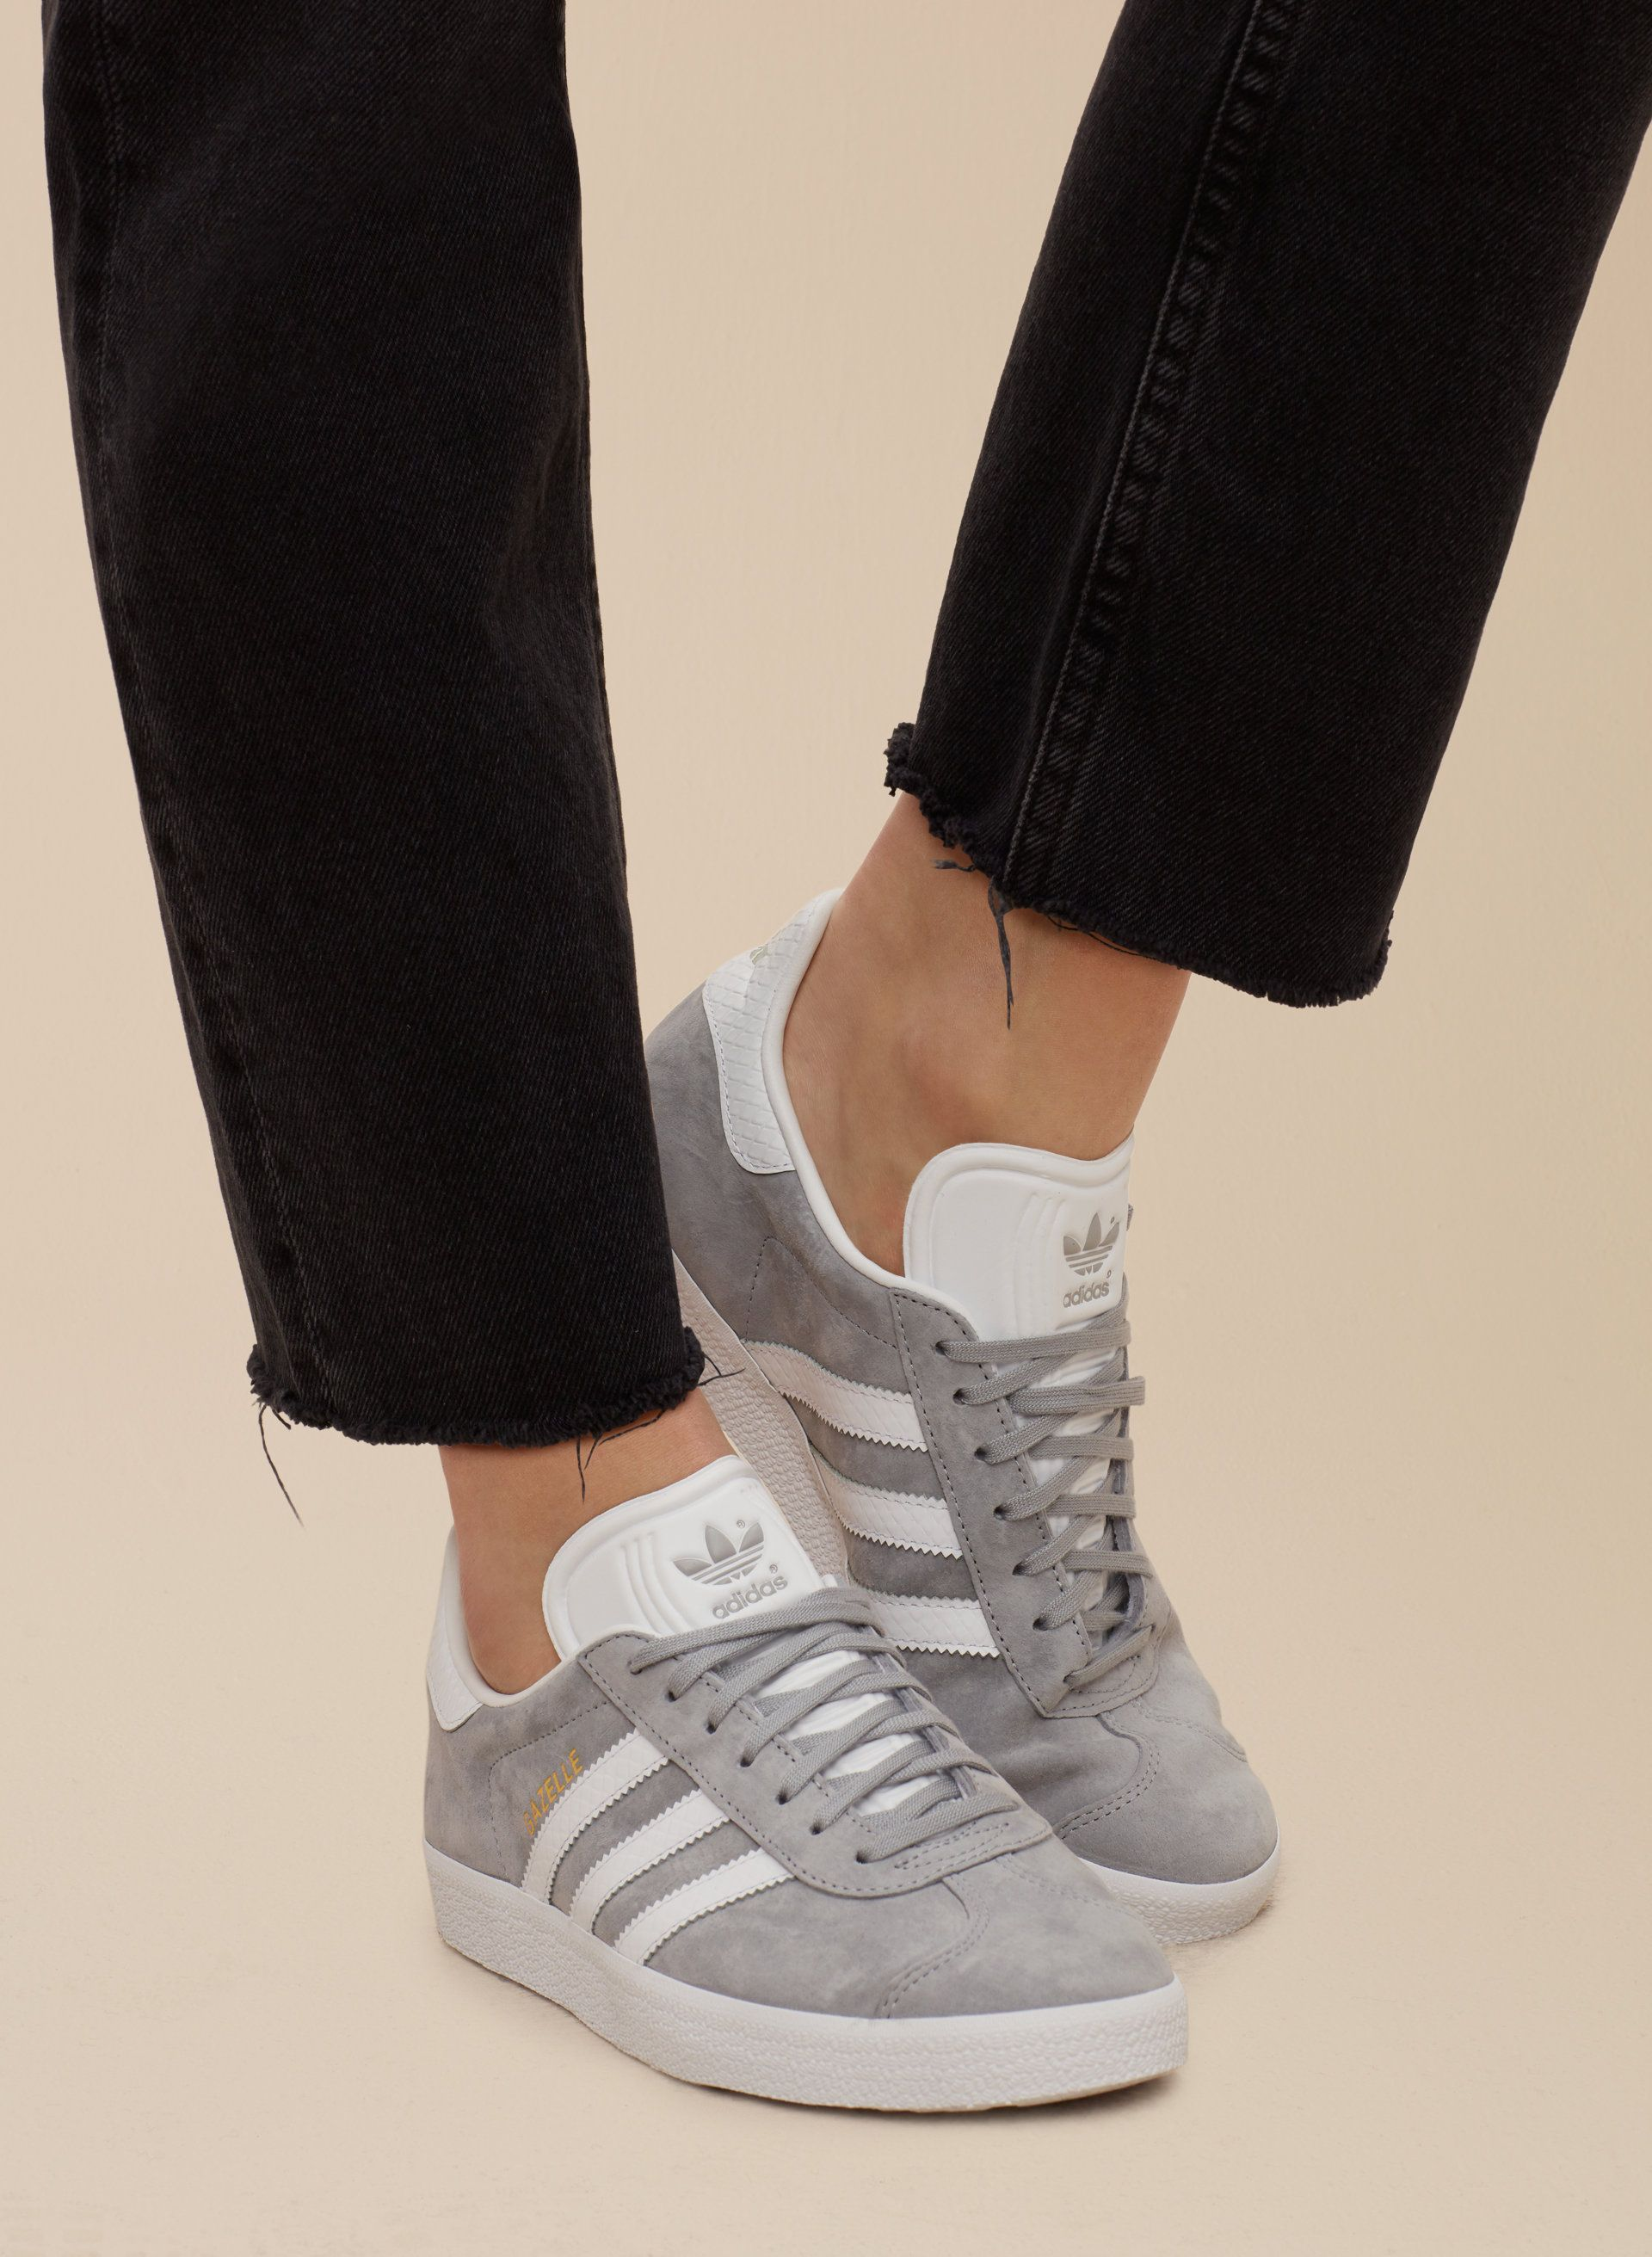 best sneakers 3c968 3dc77 Pin by Ariela Benchoam on shoooess in 2019   Pinterest   Adidas ...